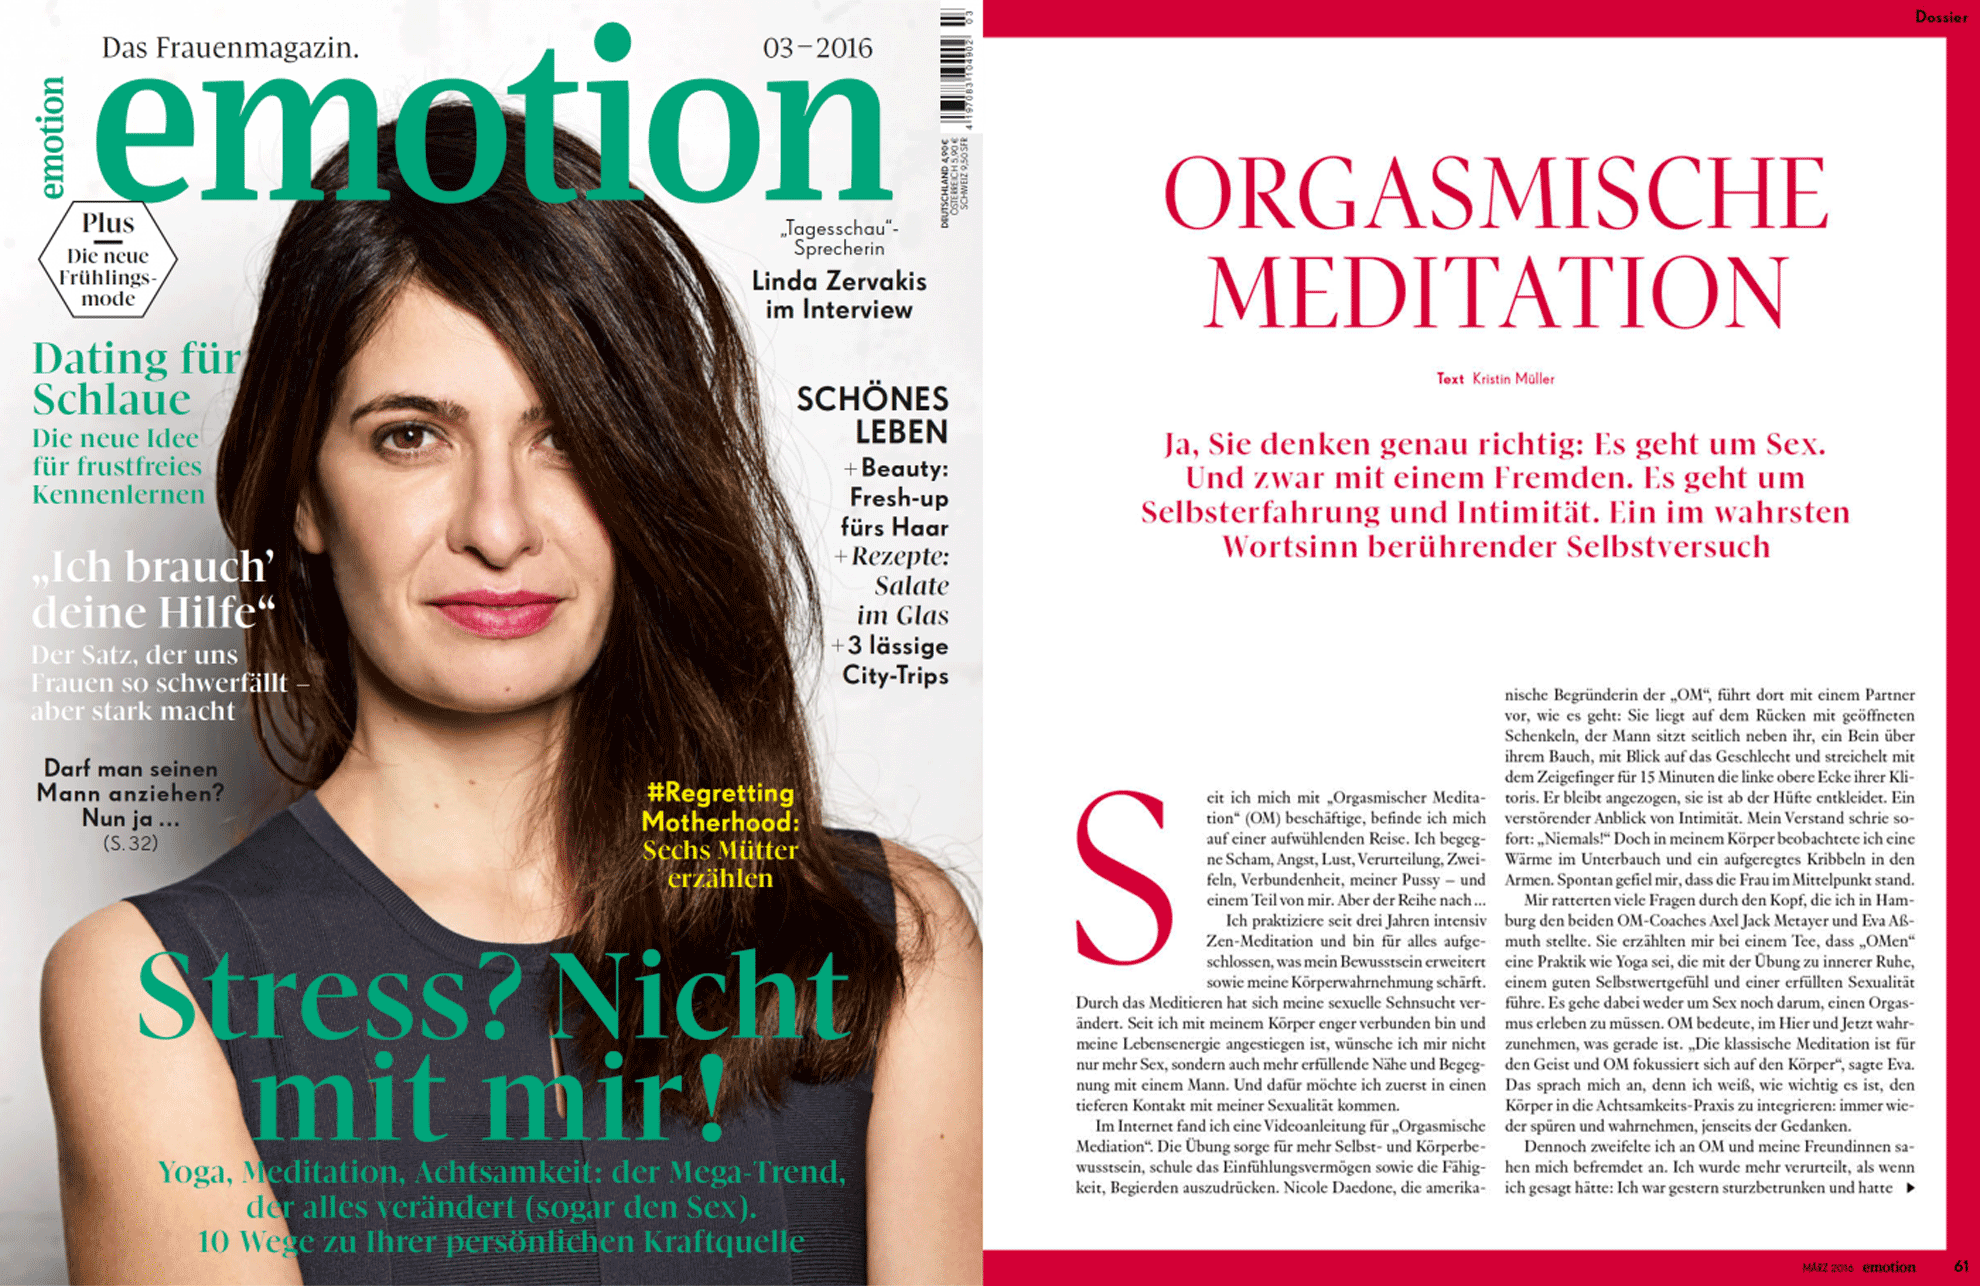 OM im Emotion Magazin, Teil 1